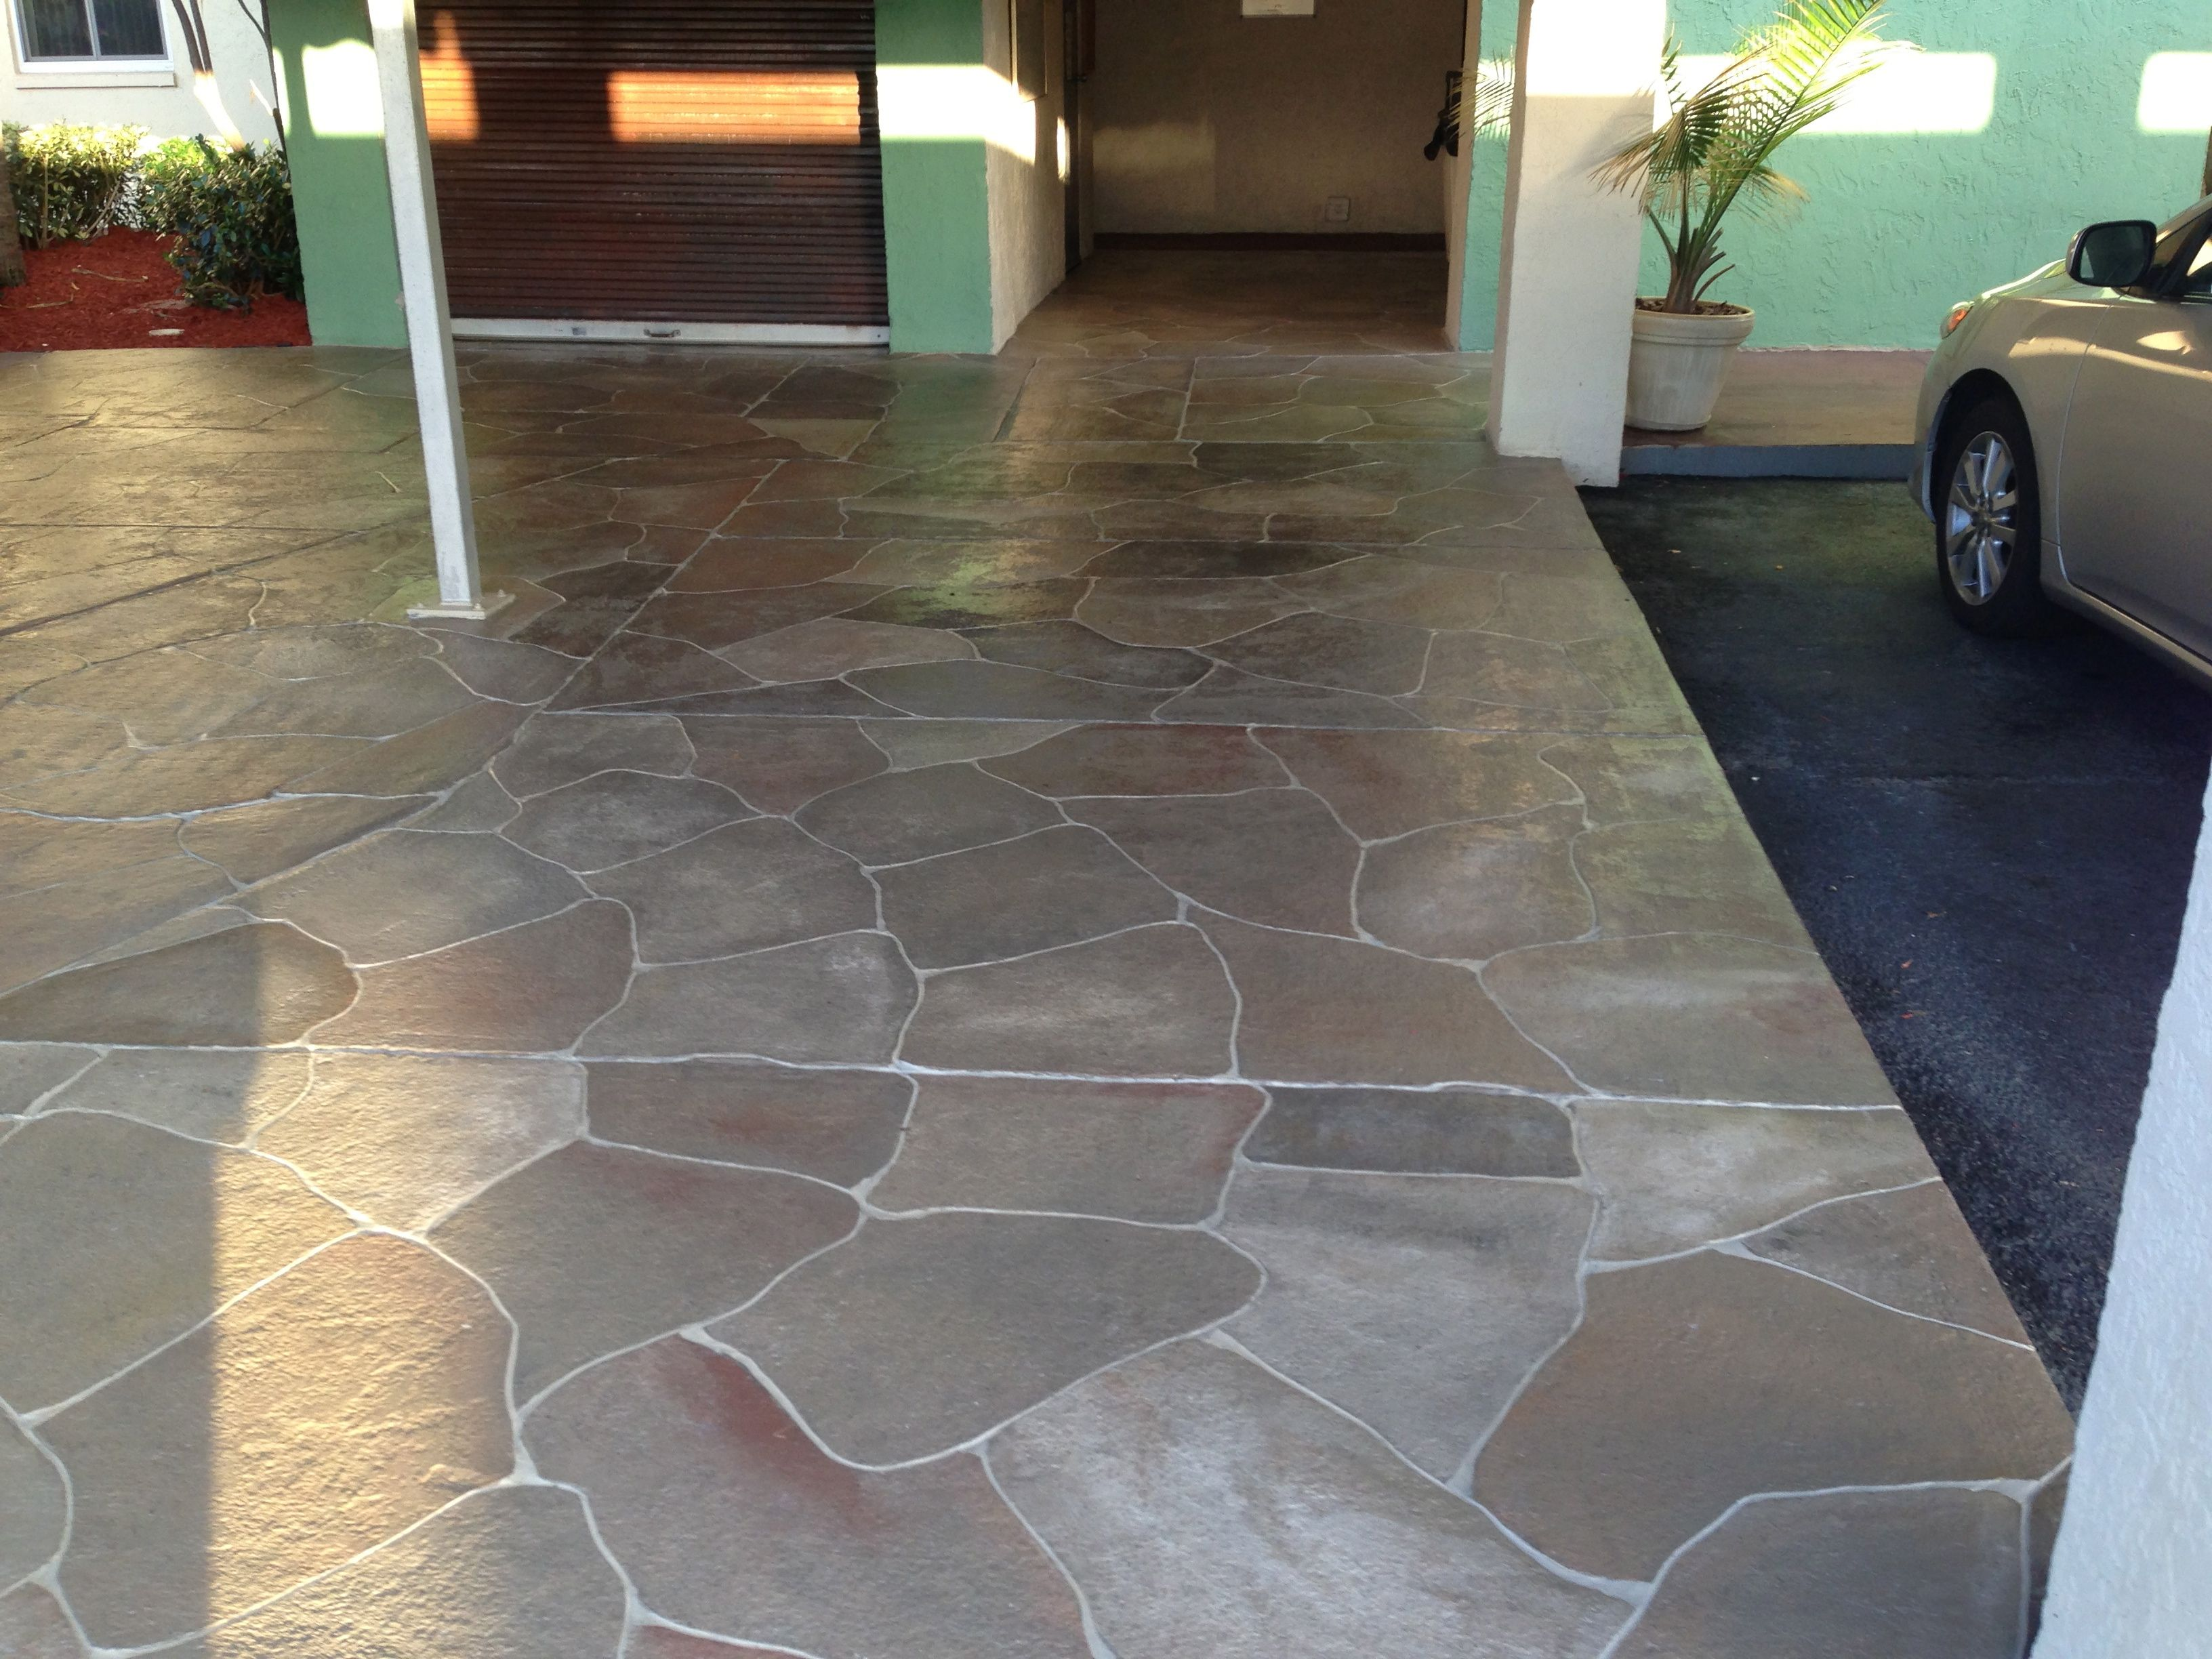 Inspiring Paint Concrete 2 Painted Concrete Patio Designs Paint